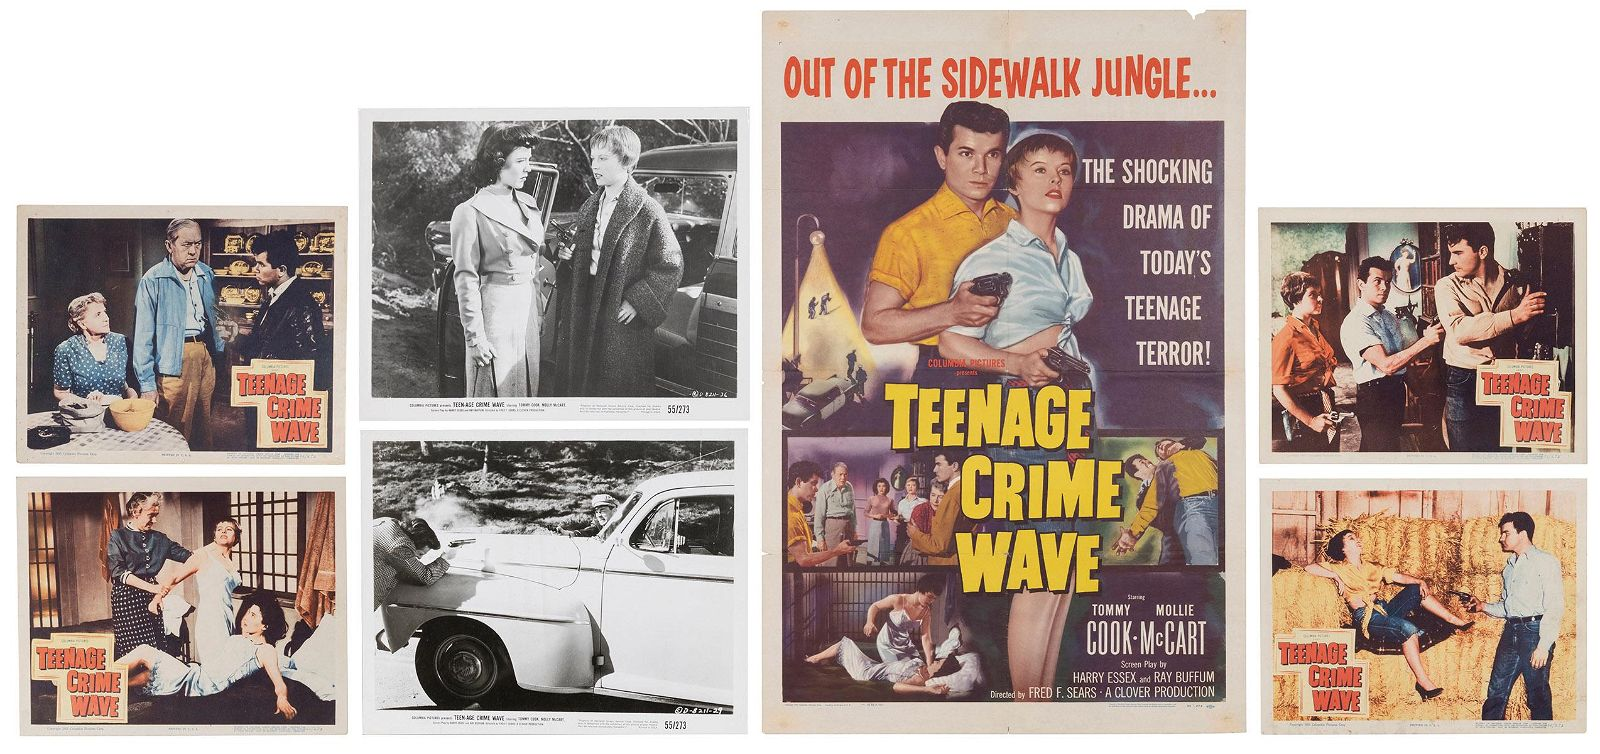 Teenage Crime Wave Movie Poster, Lobby Card, and